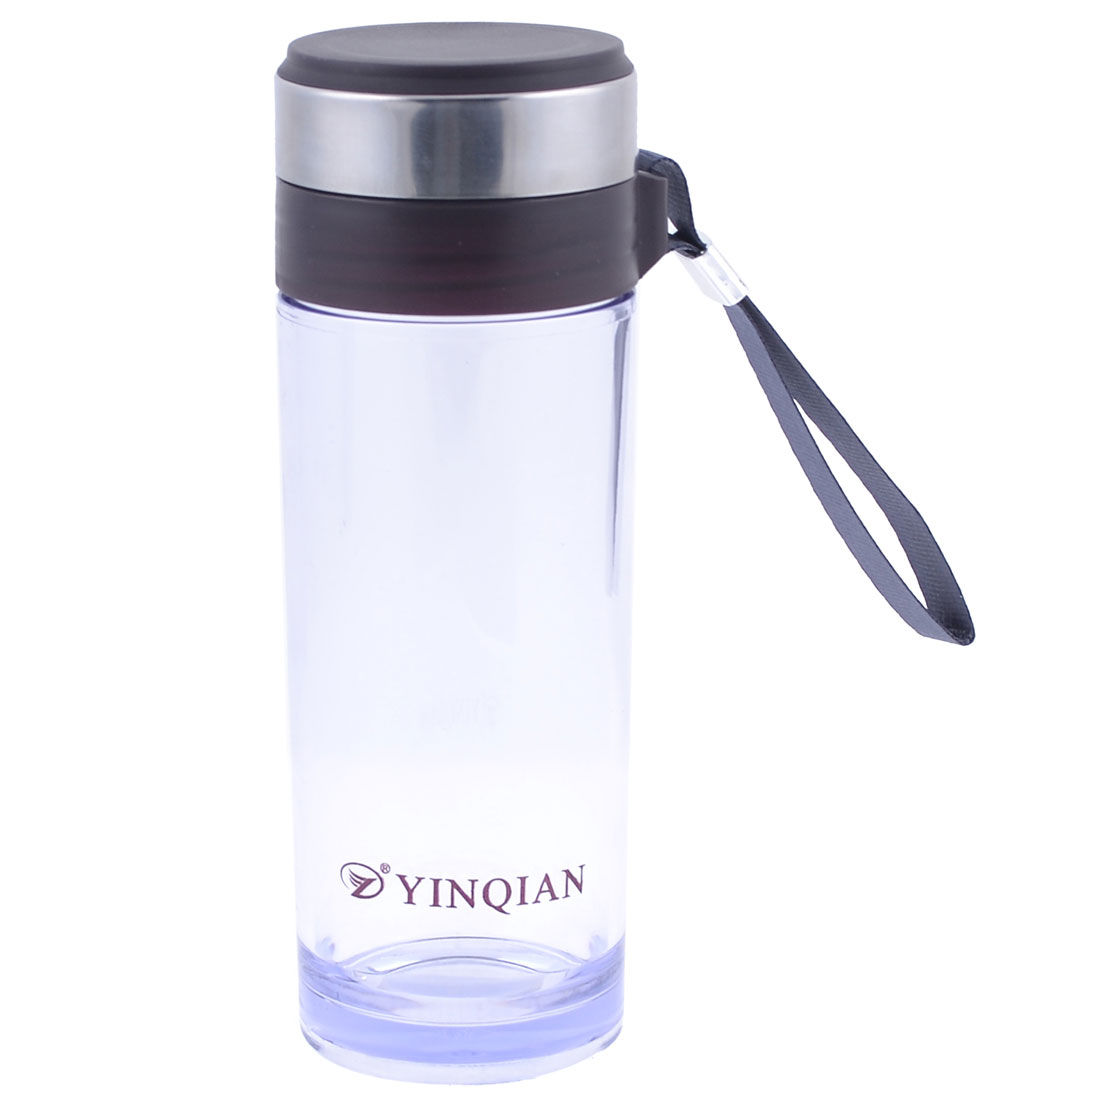 4OOml Plastic Transparent Dark Brown Strainer Design Tea Drinking Water Holder Bottle